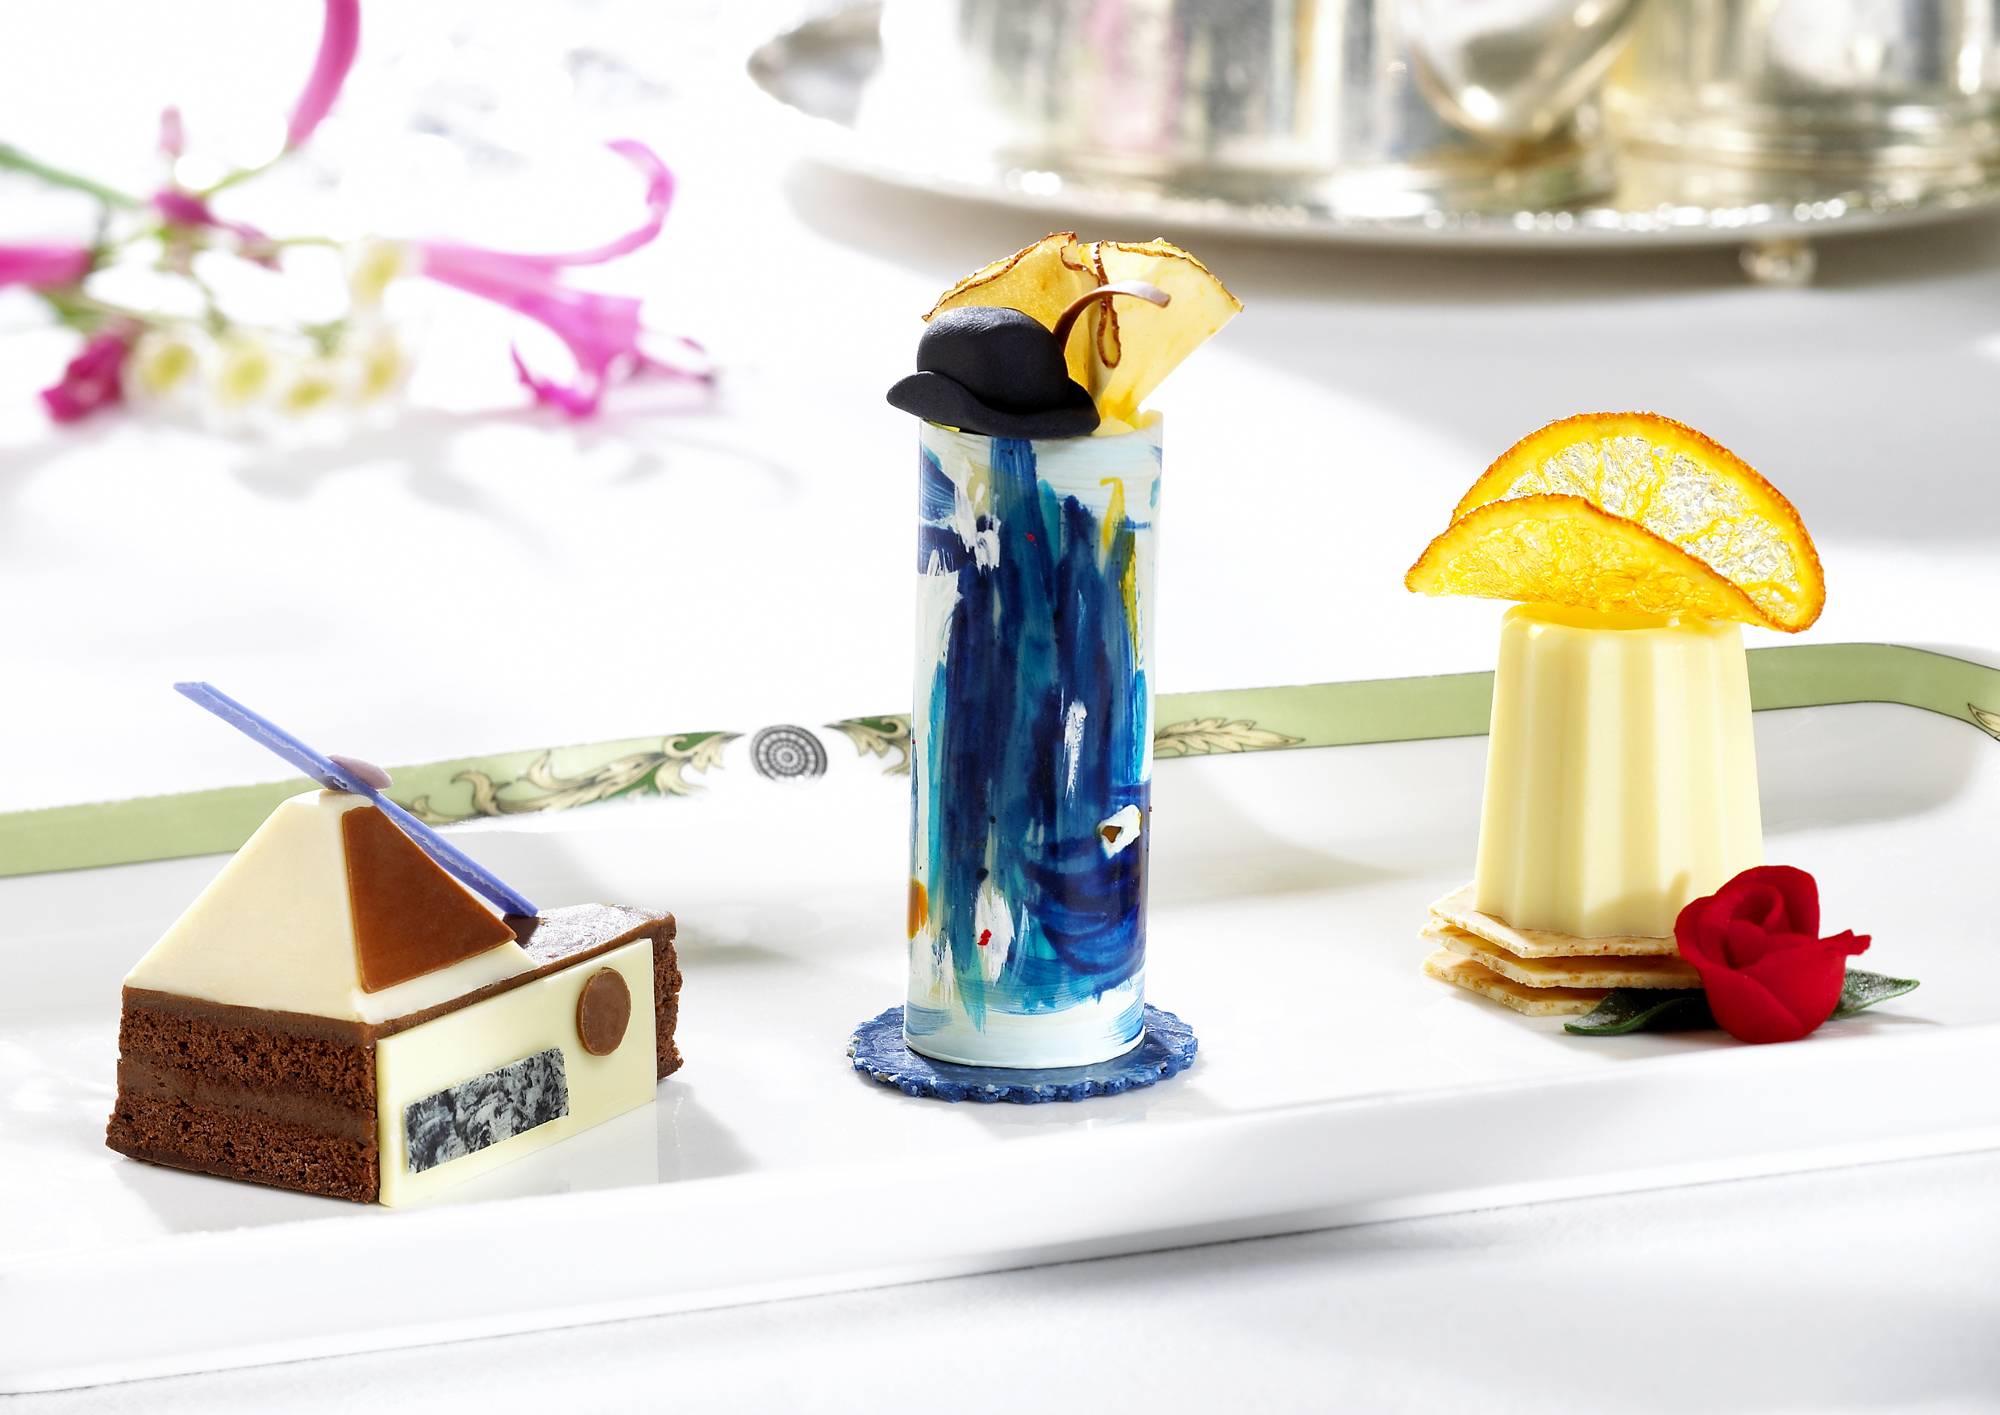 The Art Tea at The Merrion sees chefs creating colourful delights based on the hotel's private art collection.